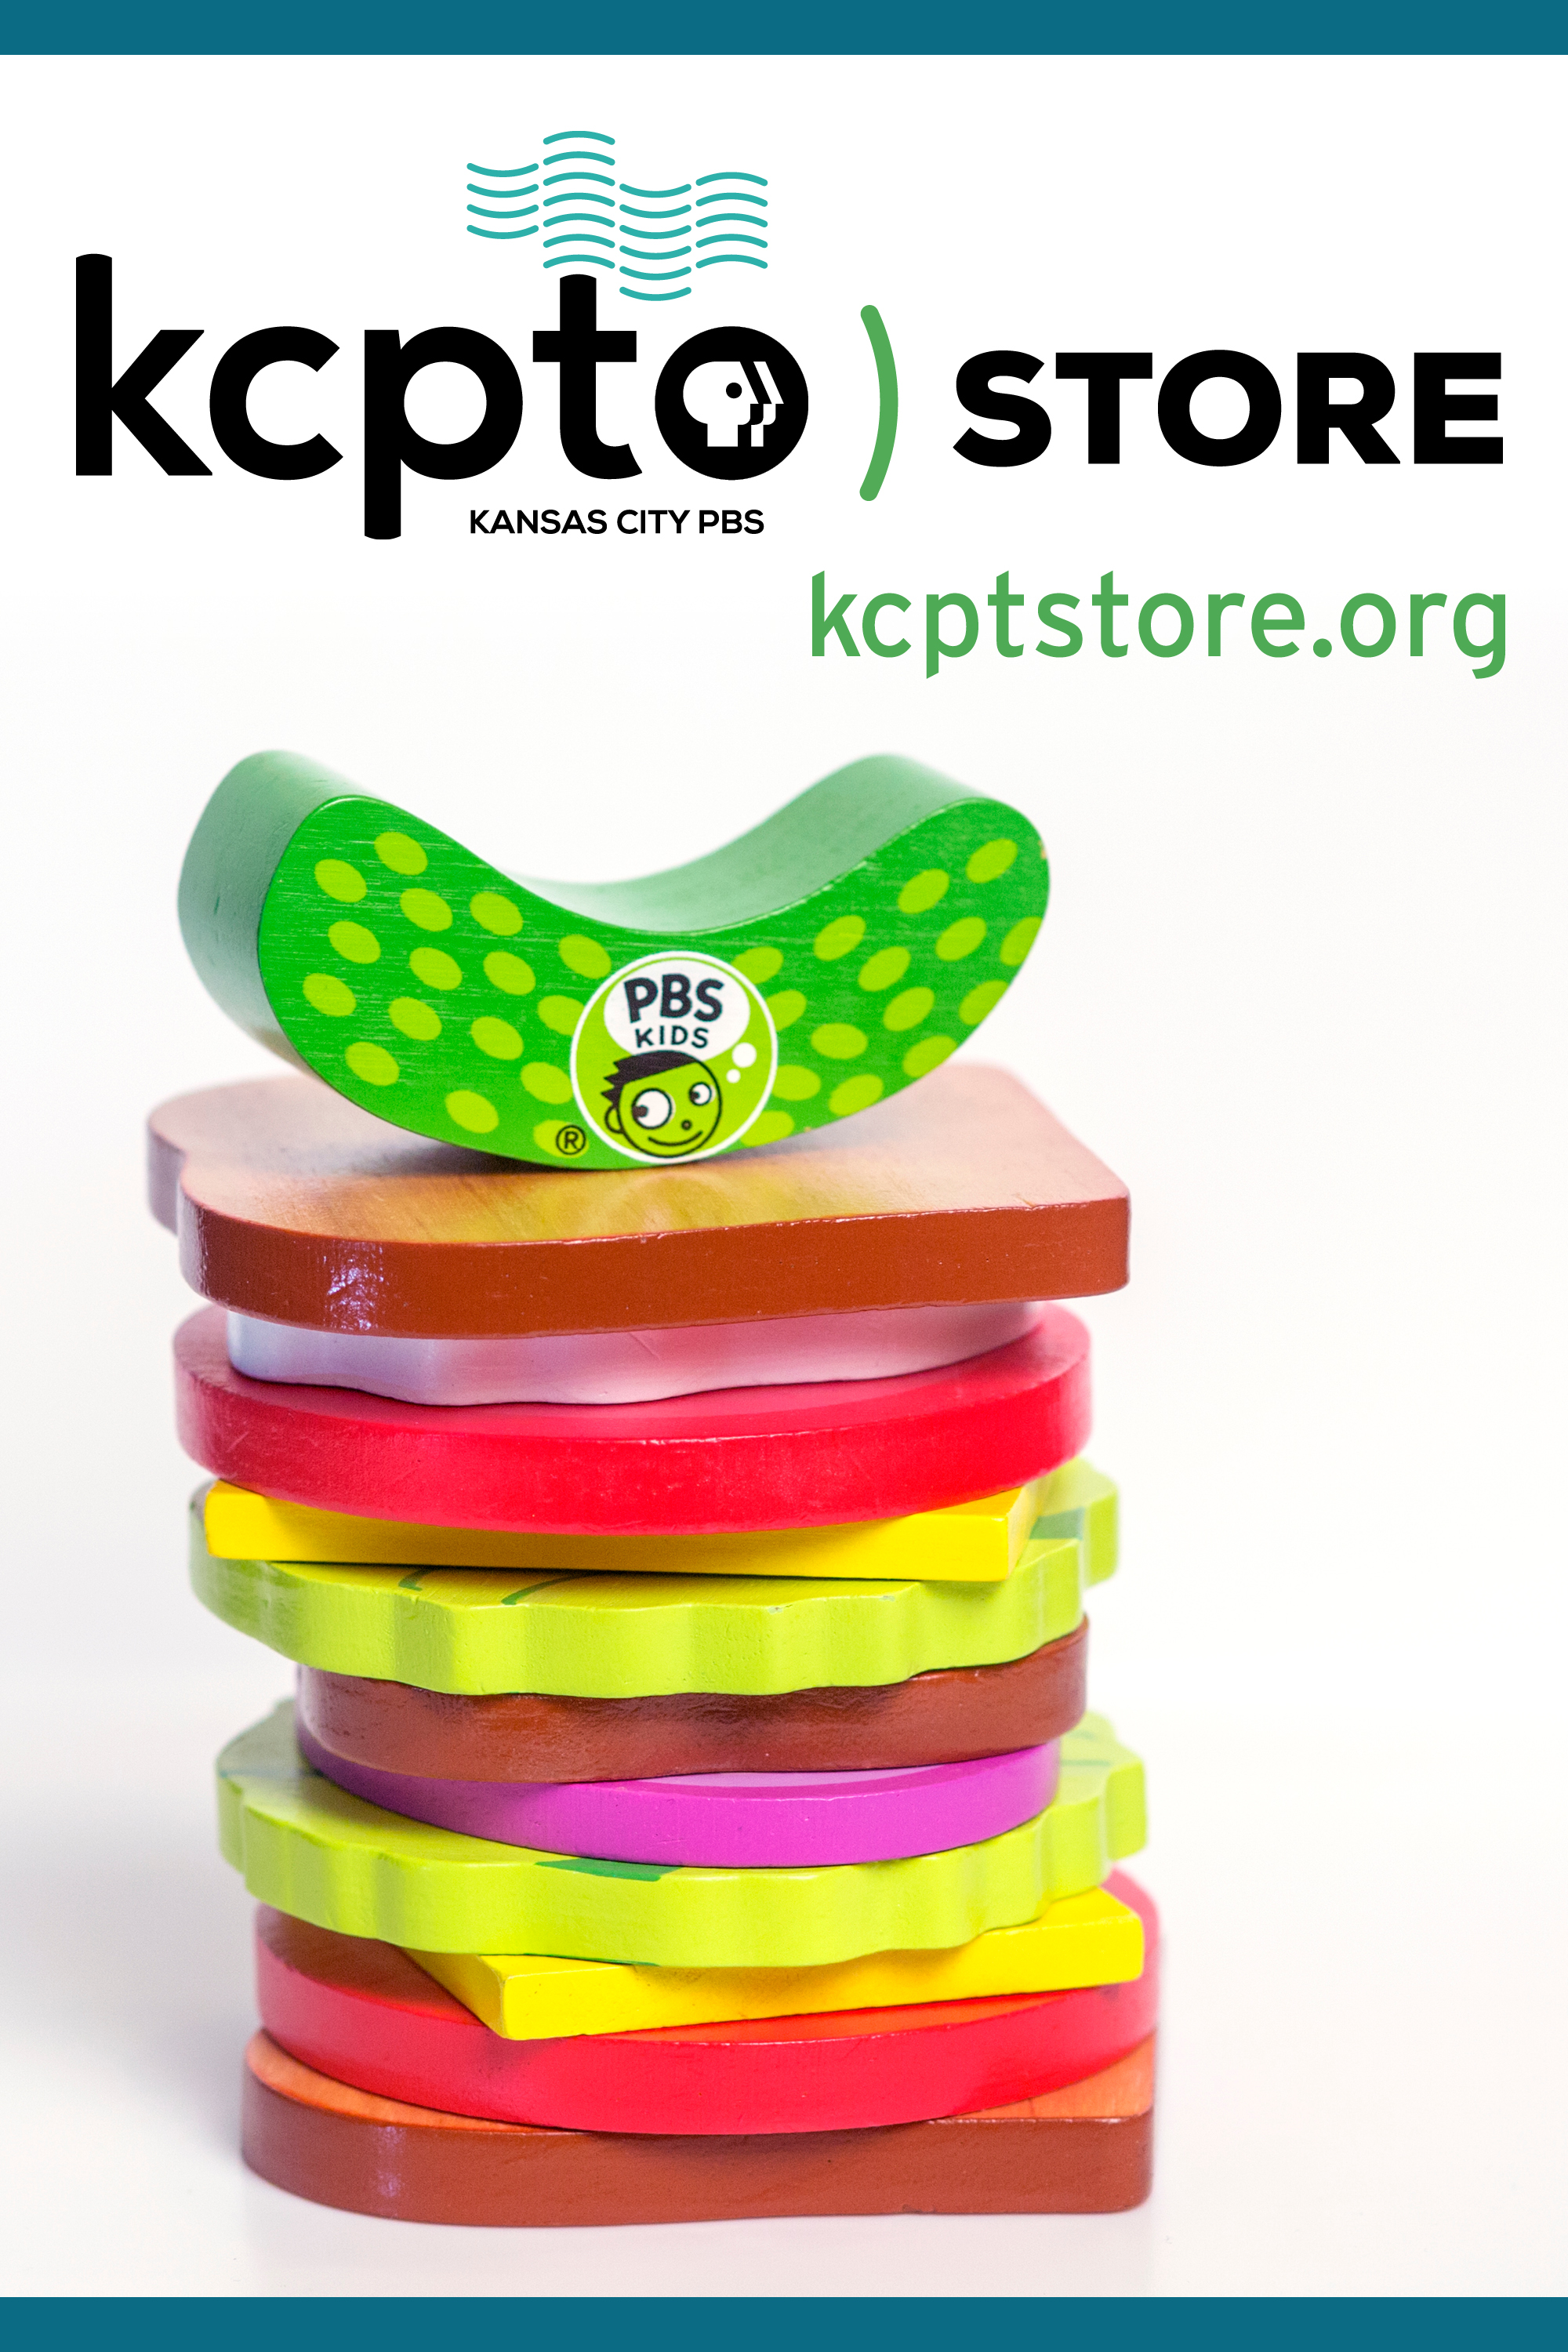 KCPT Store